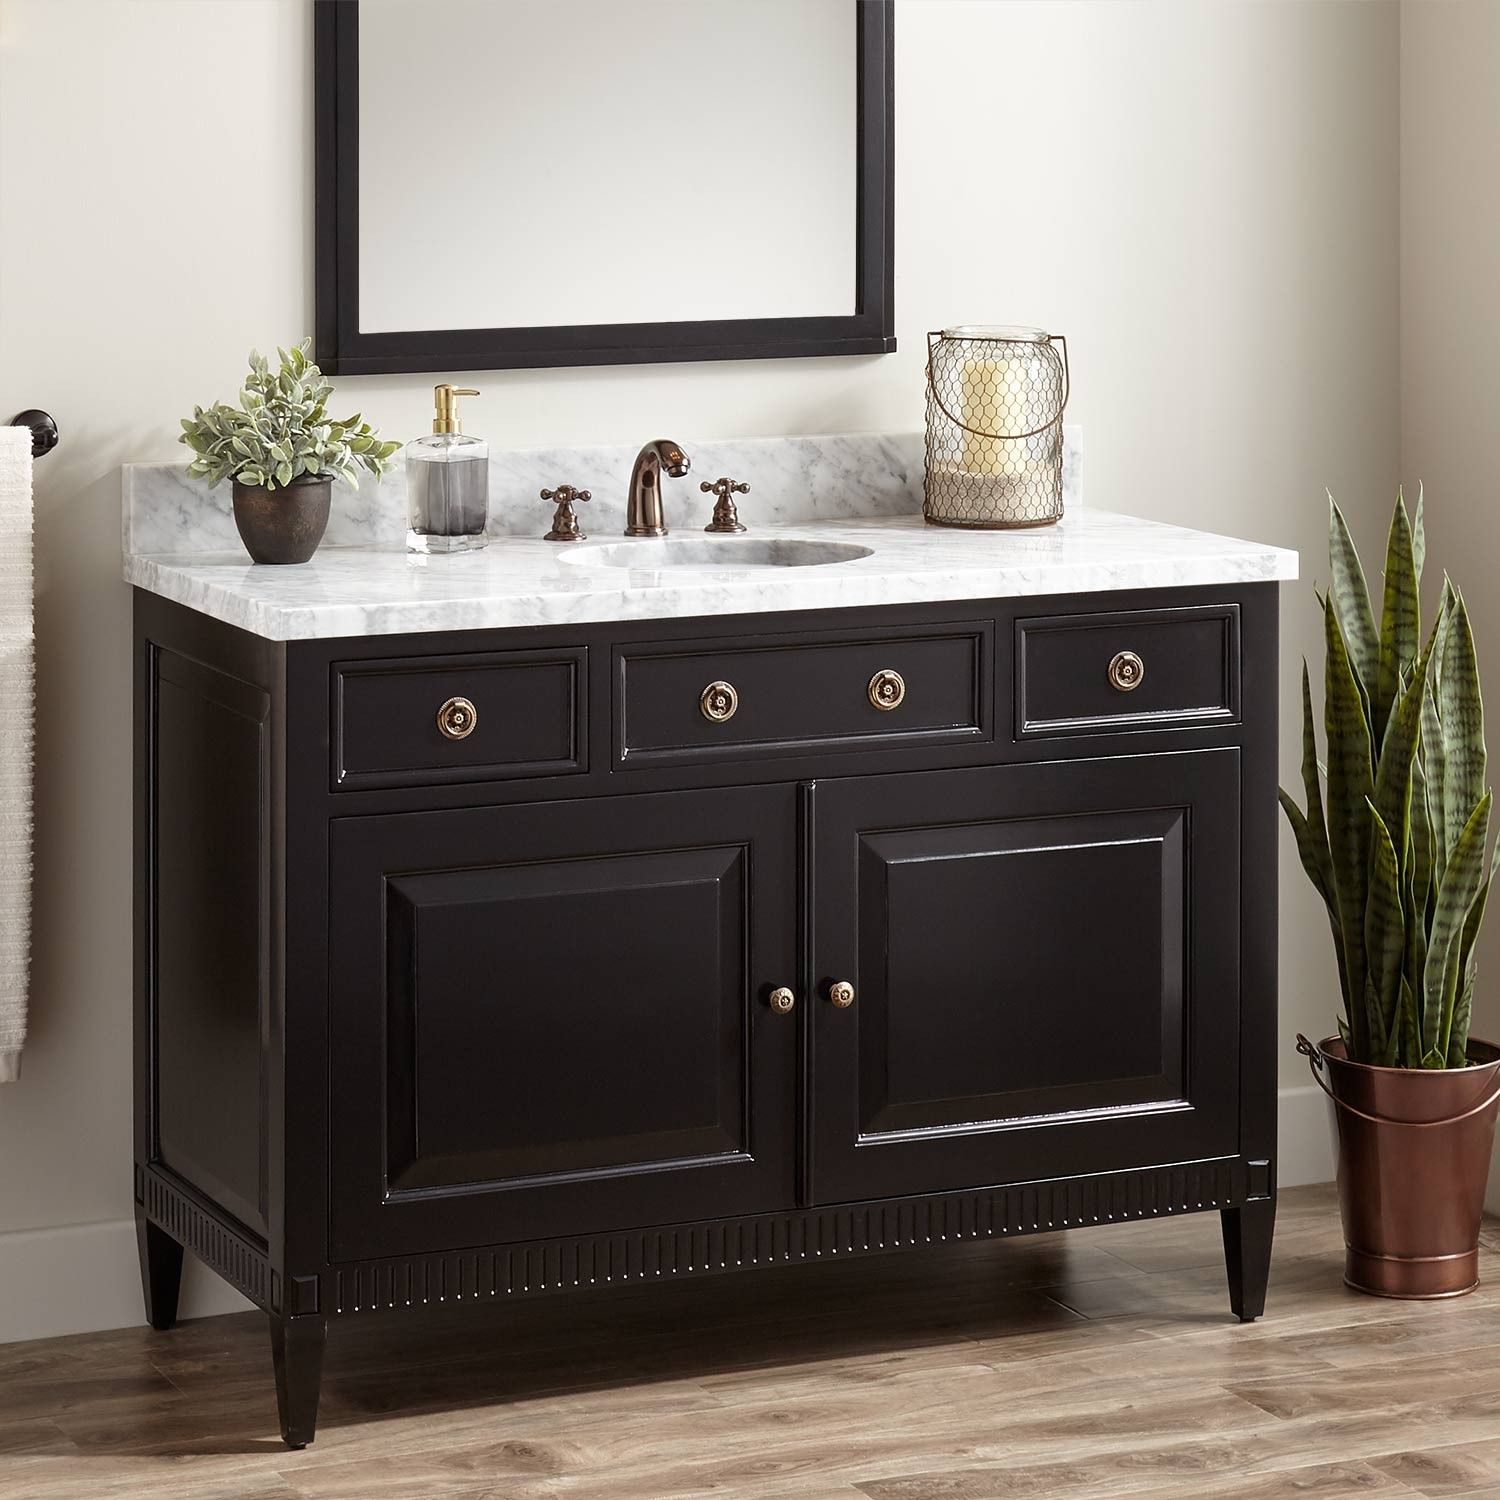 Mahogany Vanity For Undermount Sink